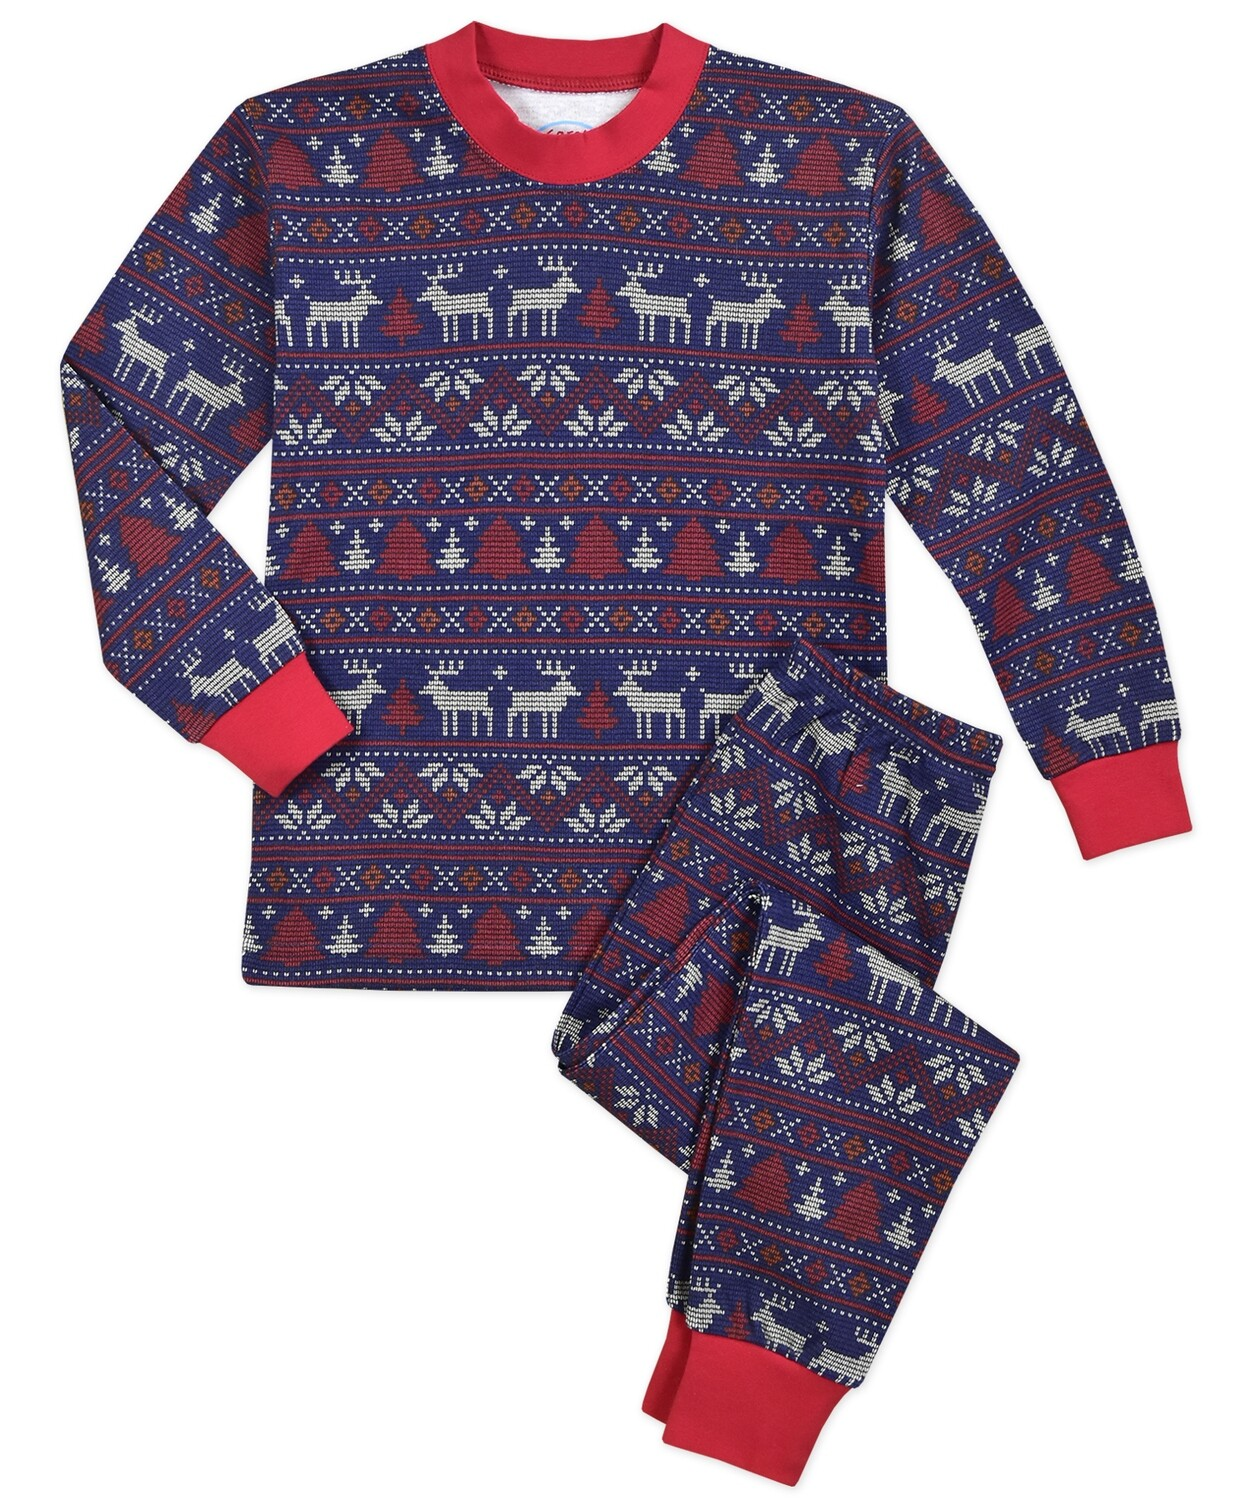 Saras Prints Super Soft Navy Fair Isle Holiday Unisex Pajama Set